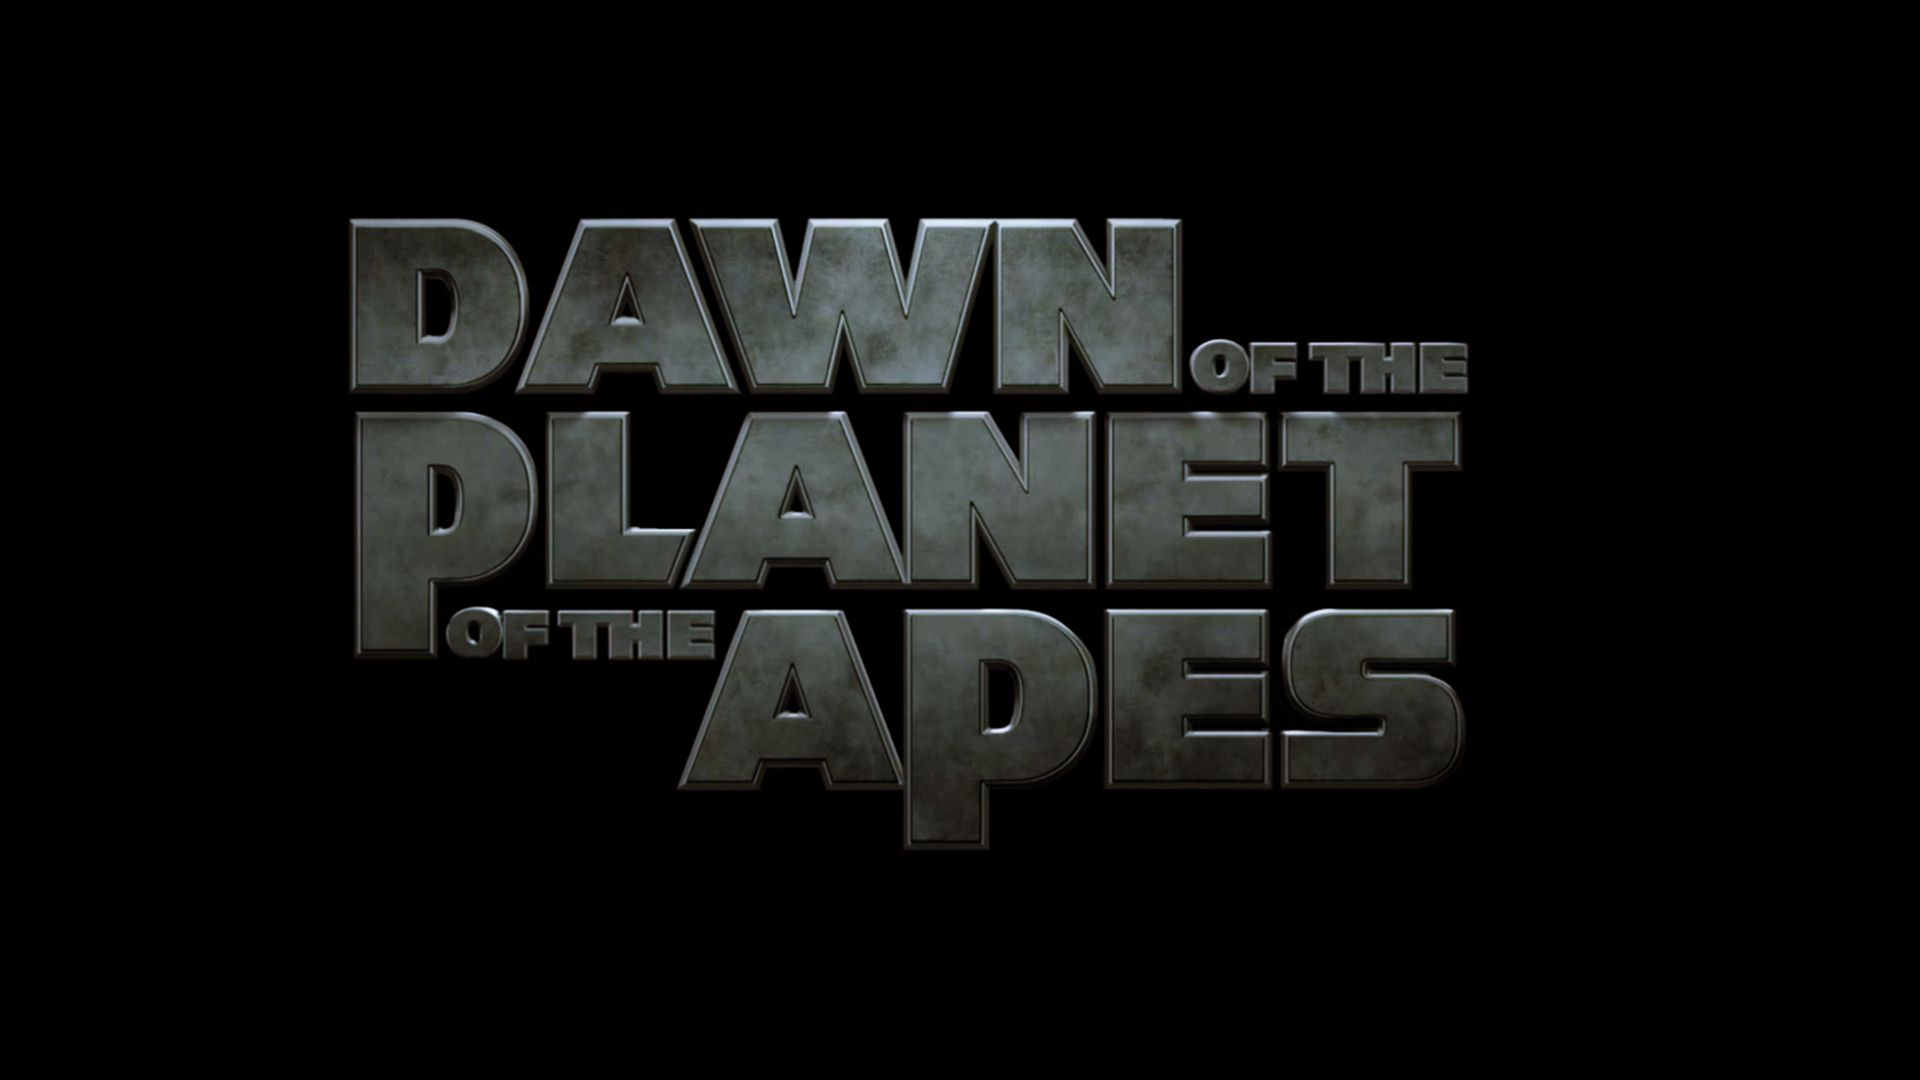 dawn of the planet of the apes logo wallpaper 33540